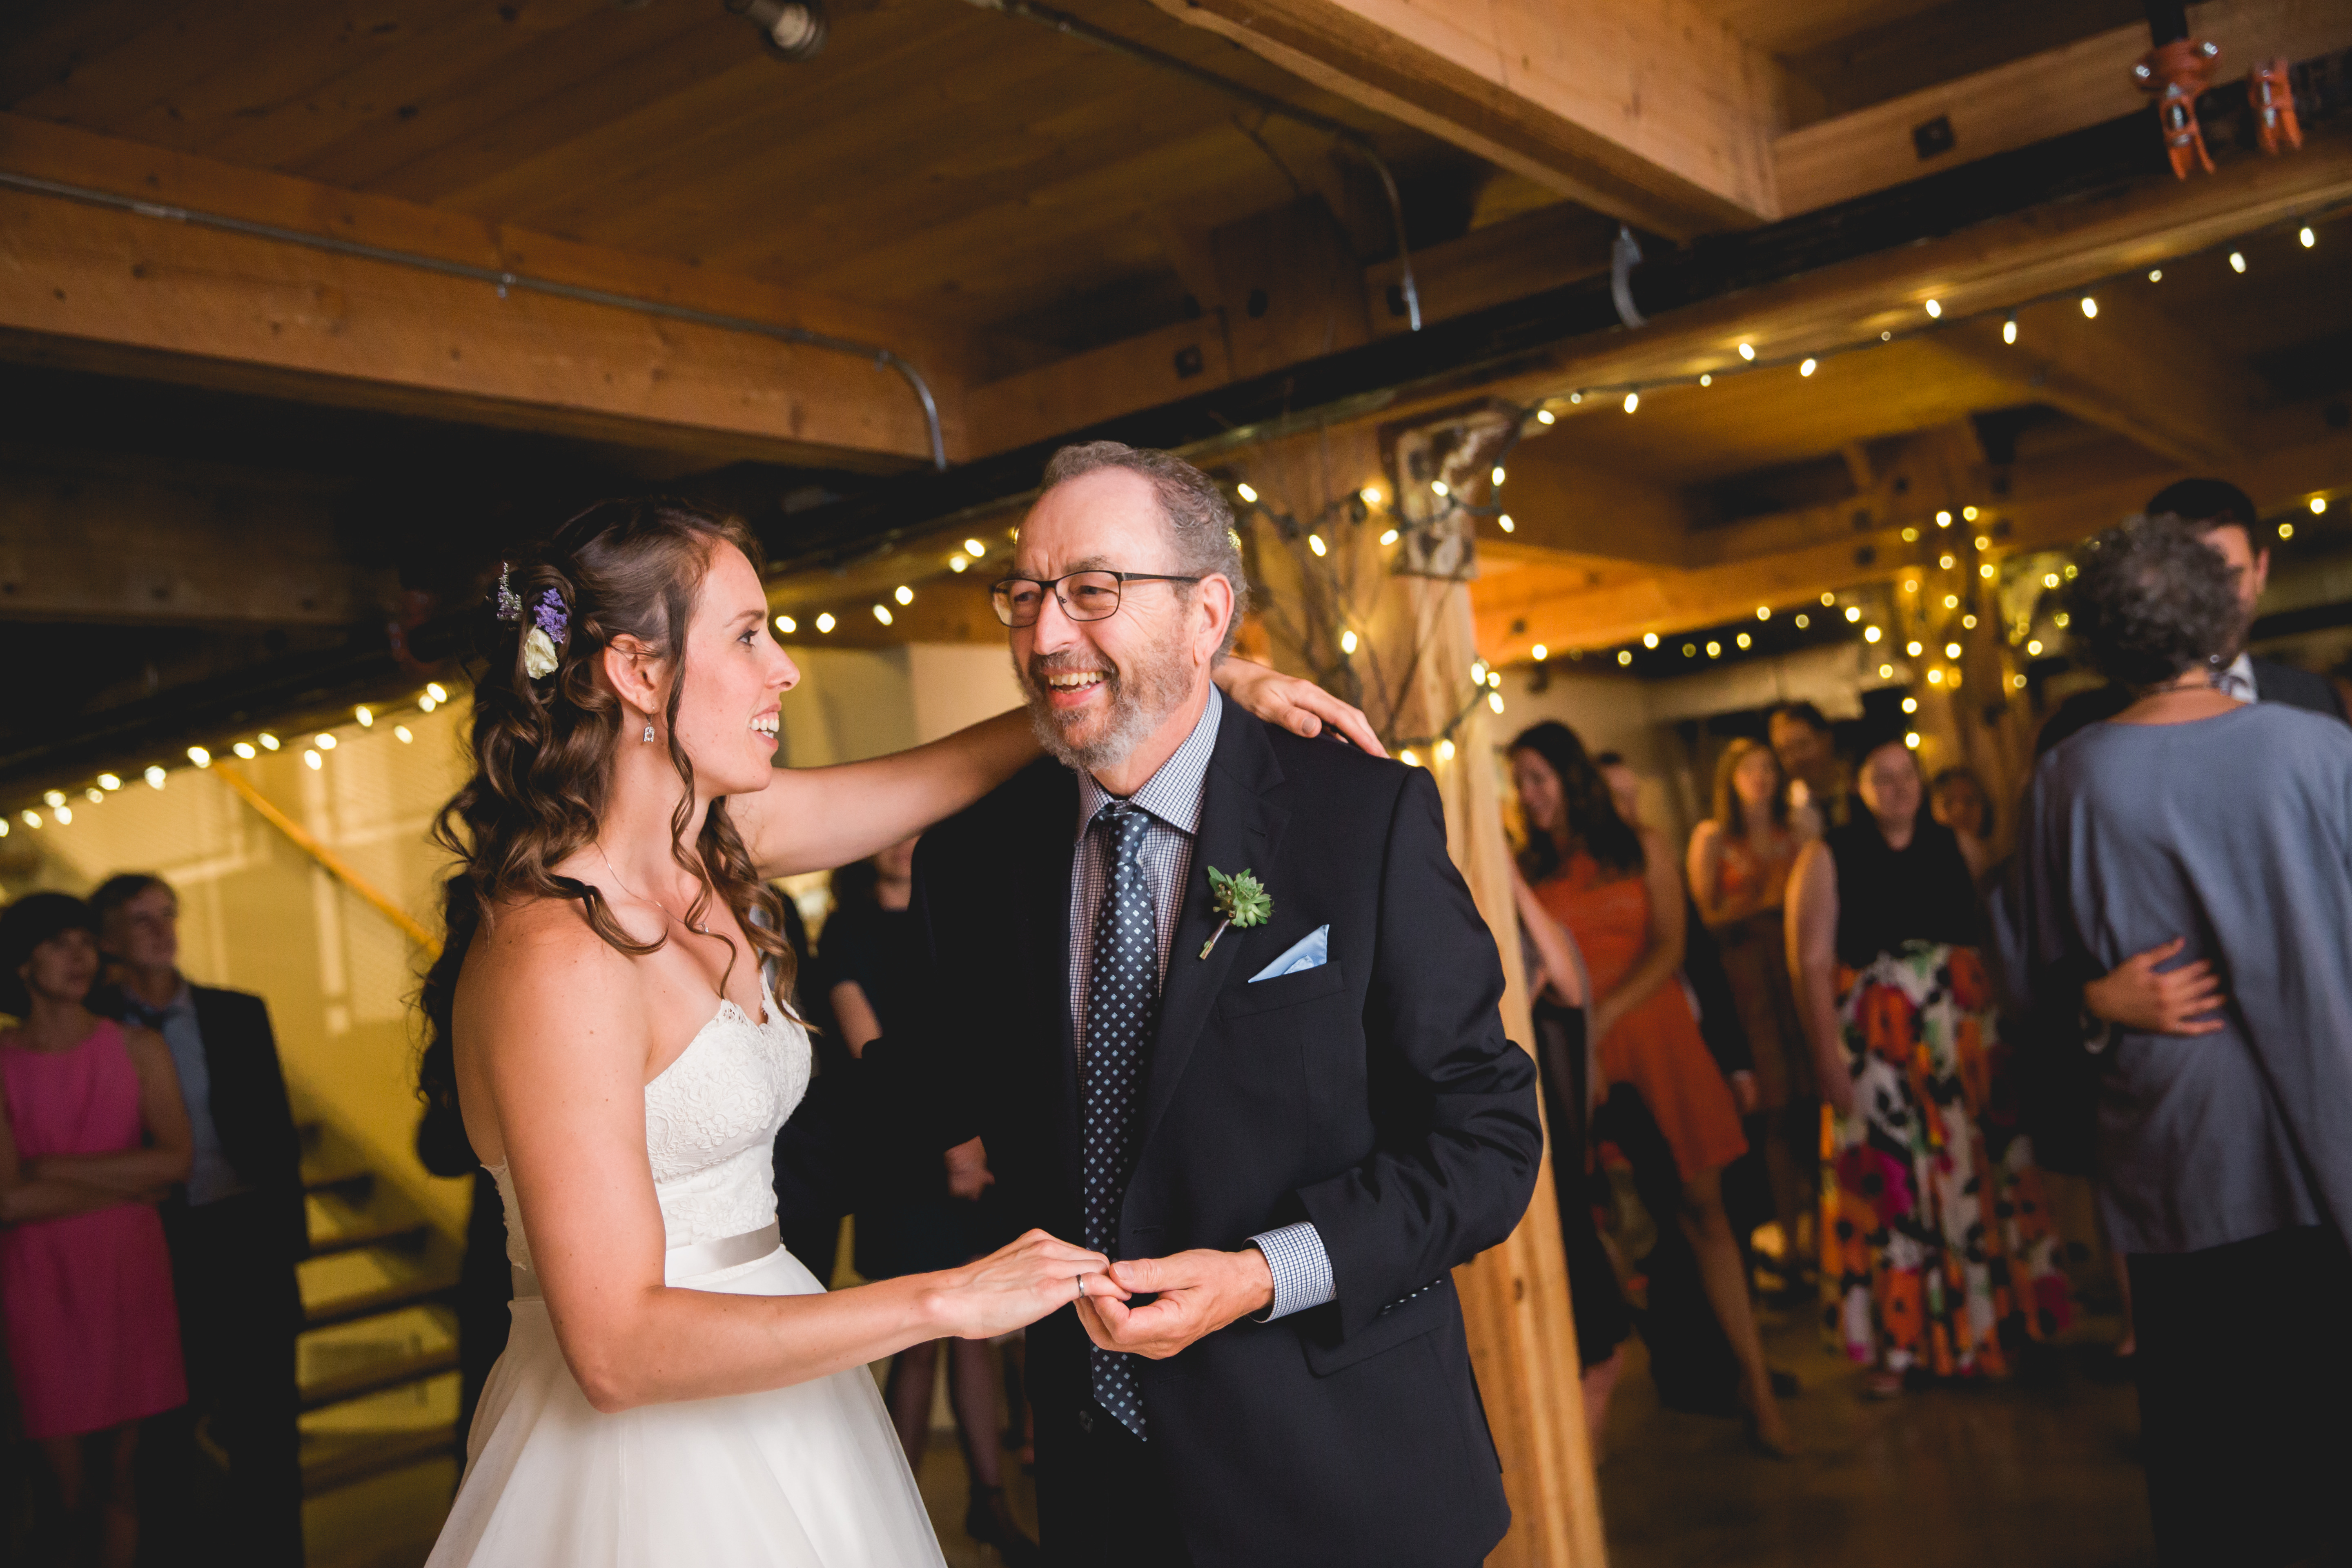 Bride dances with her father in law at Alton Mill wedding